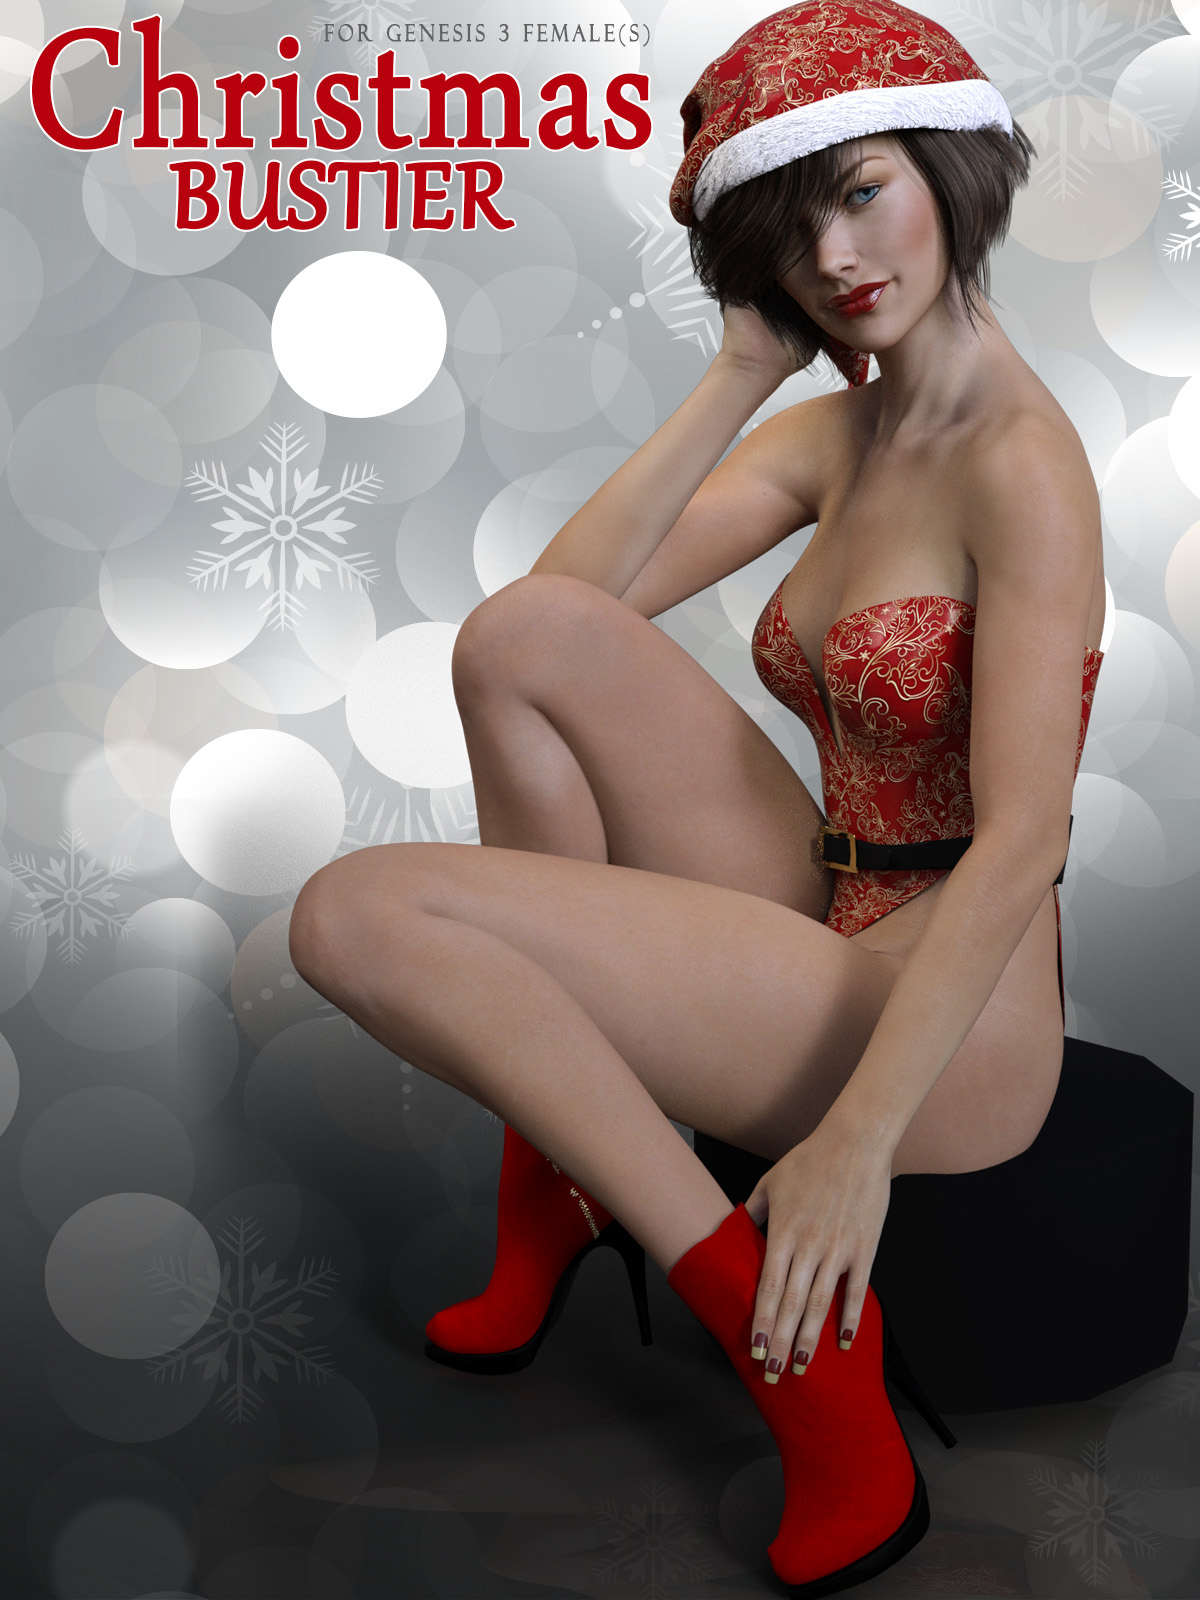 Christmas Bustier for Genesis 3 Females